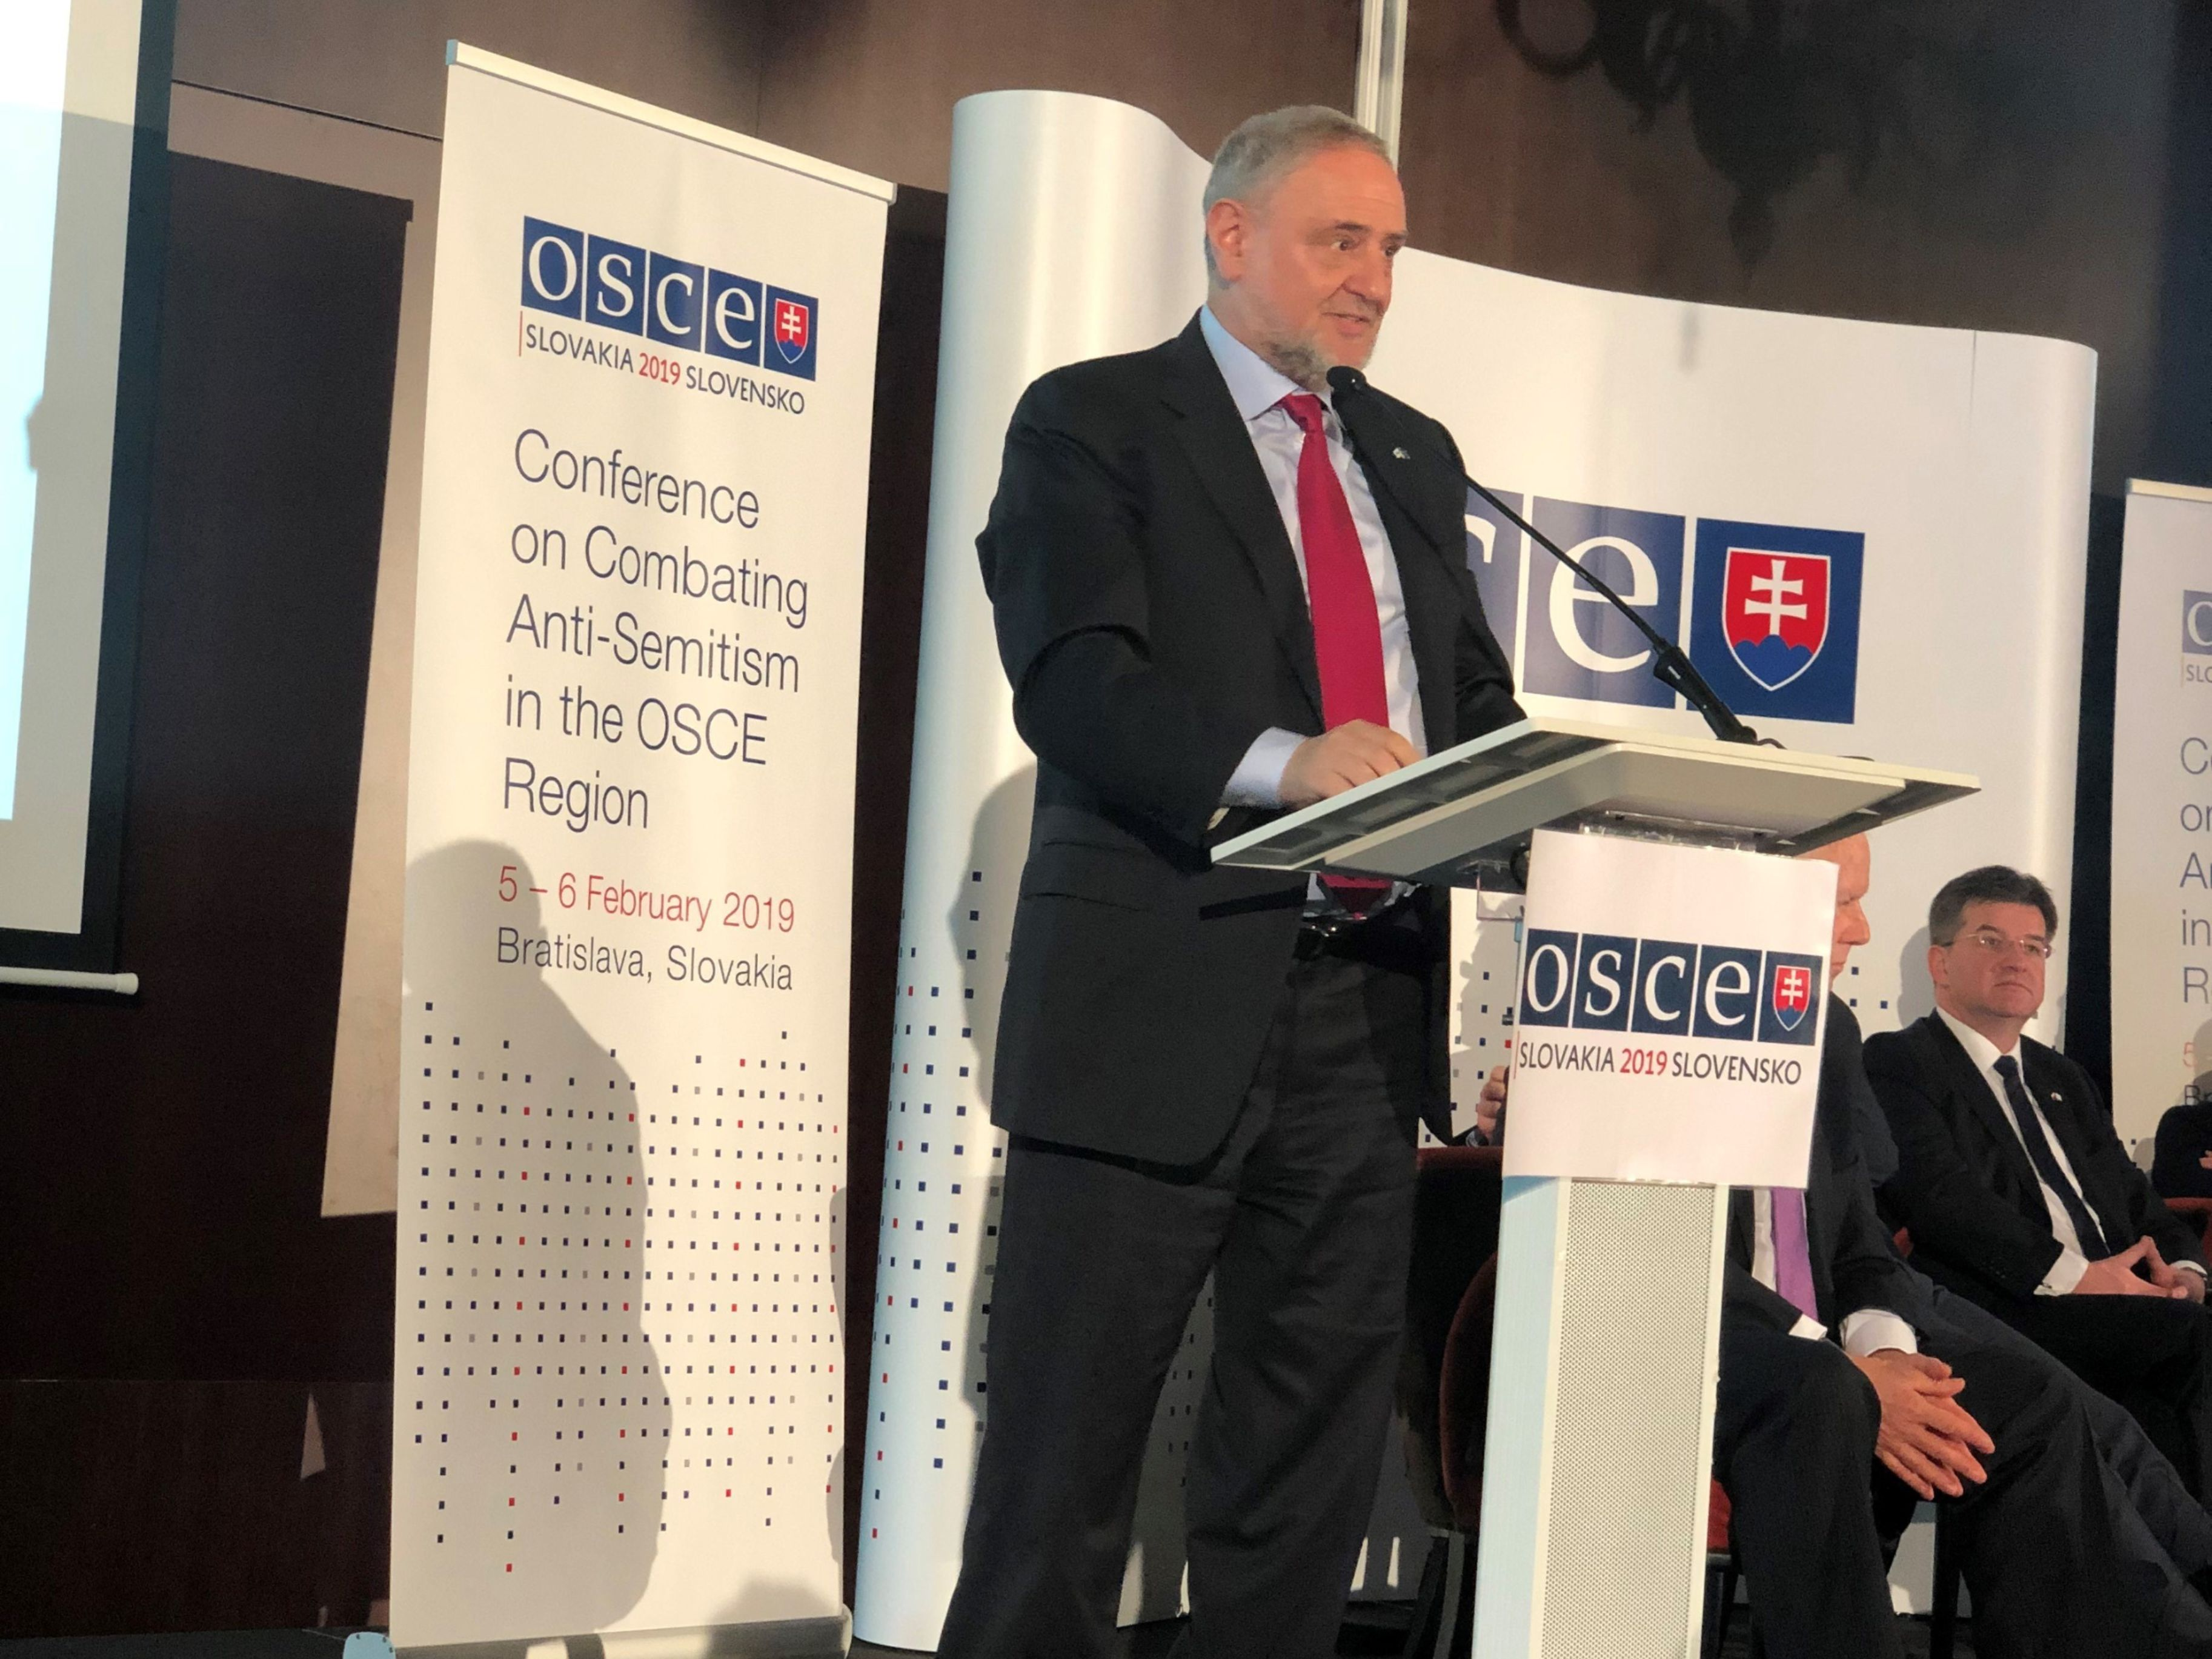 WJC CEO and Executive Vice President Robert Singer speaking at the OSCE conference. (c) Courtesy of World Jewish Congress